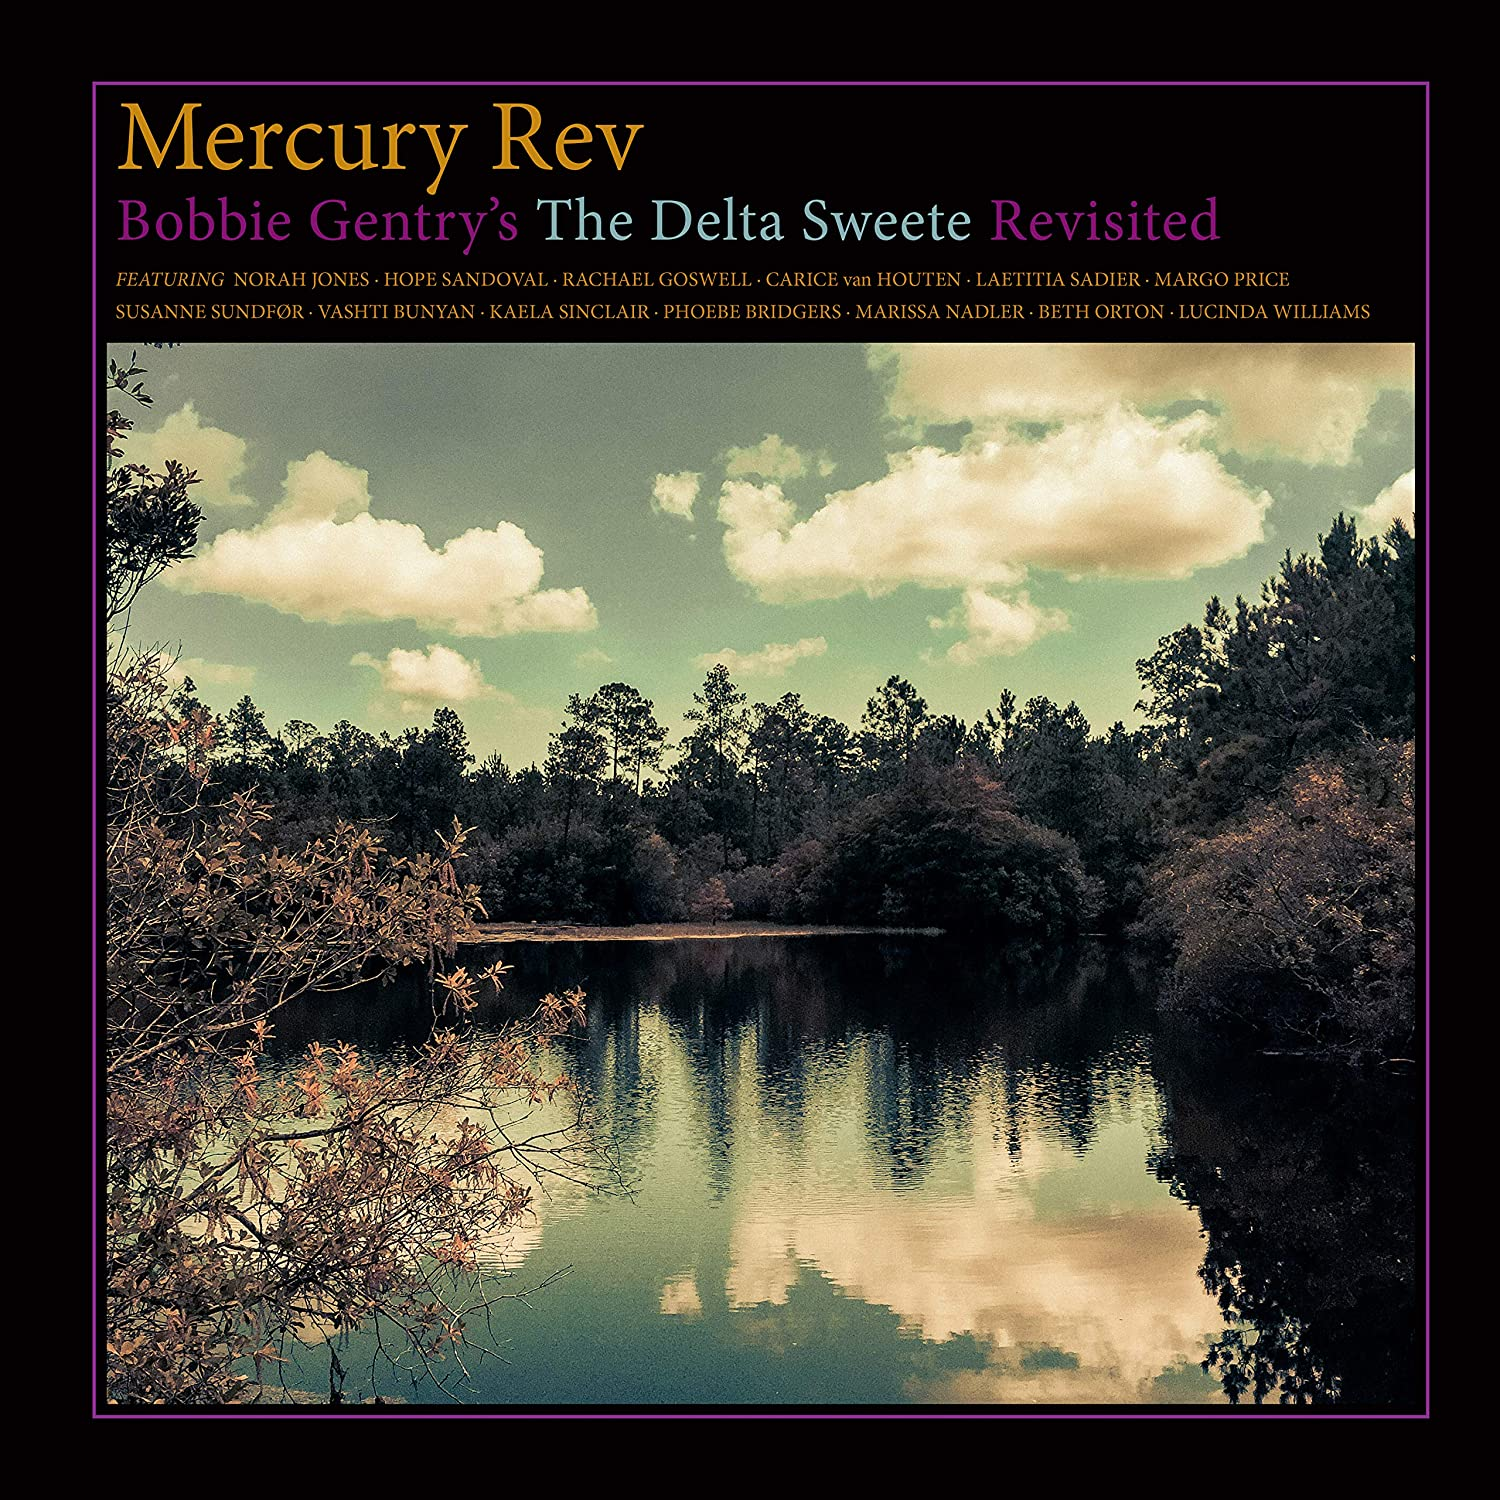 Mercury Rev - Bobbie Gentry's The Delta Sweete Revisited (180 gm version)